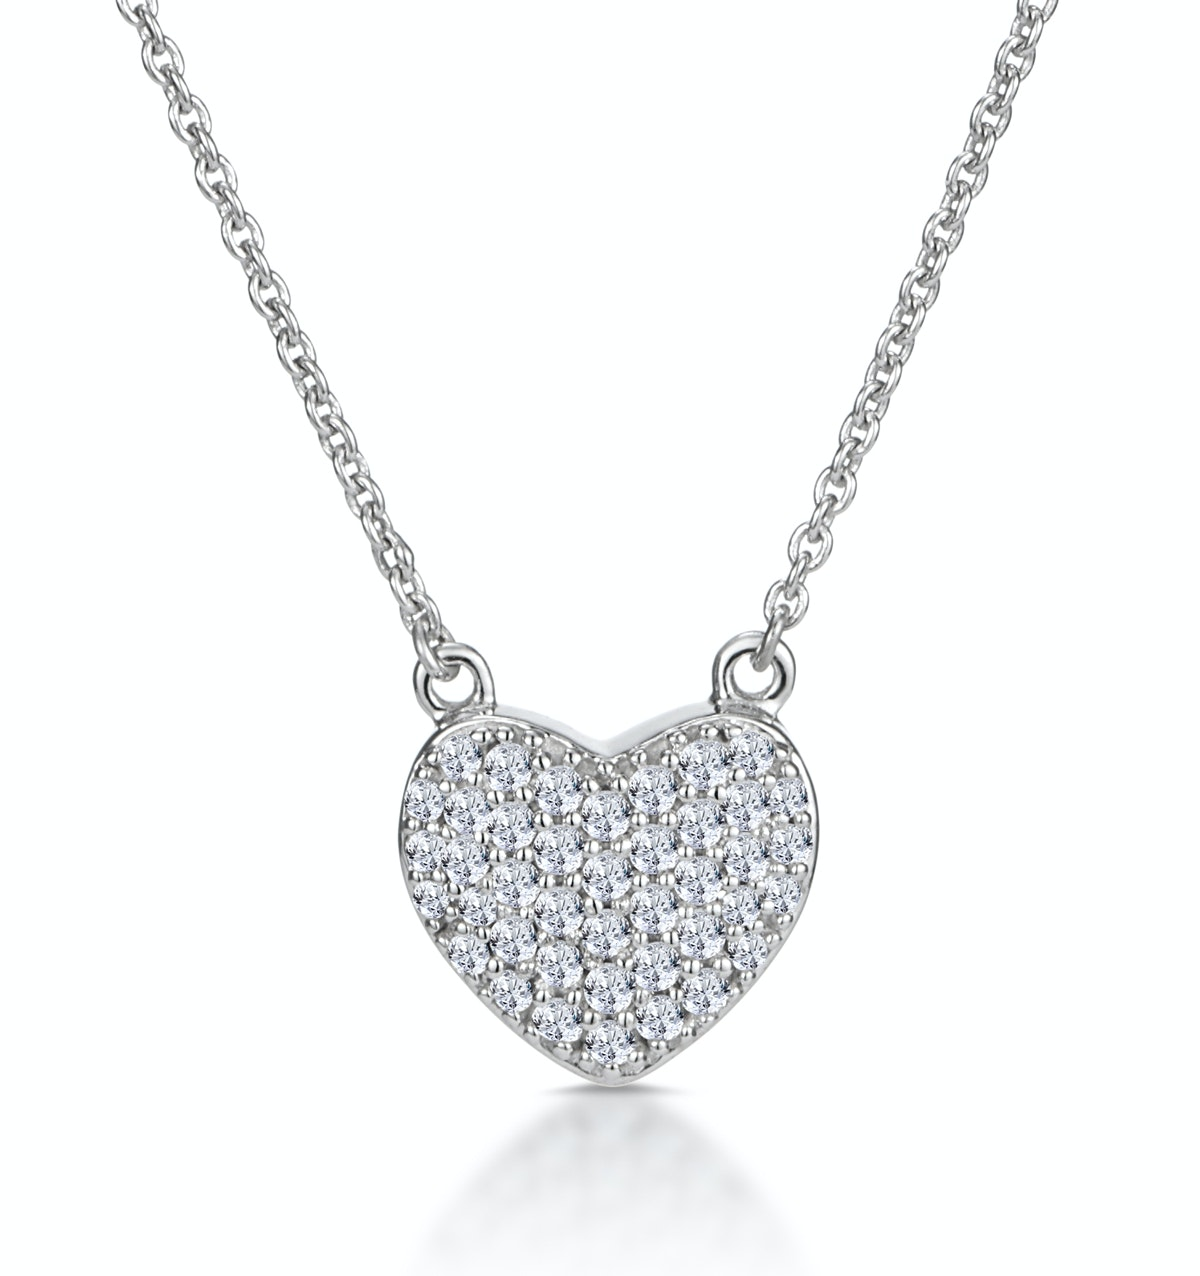 Diamond Pave Heart Necklace 0.33ct in 9K White Gold